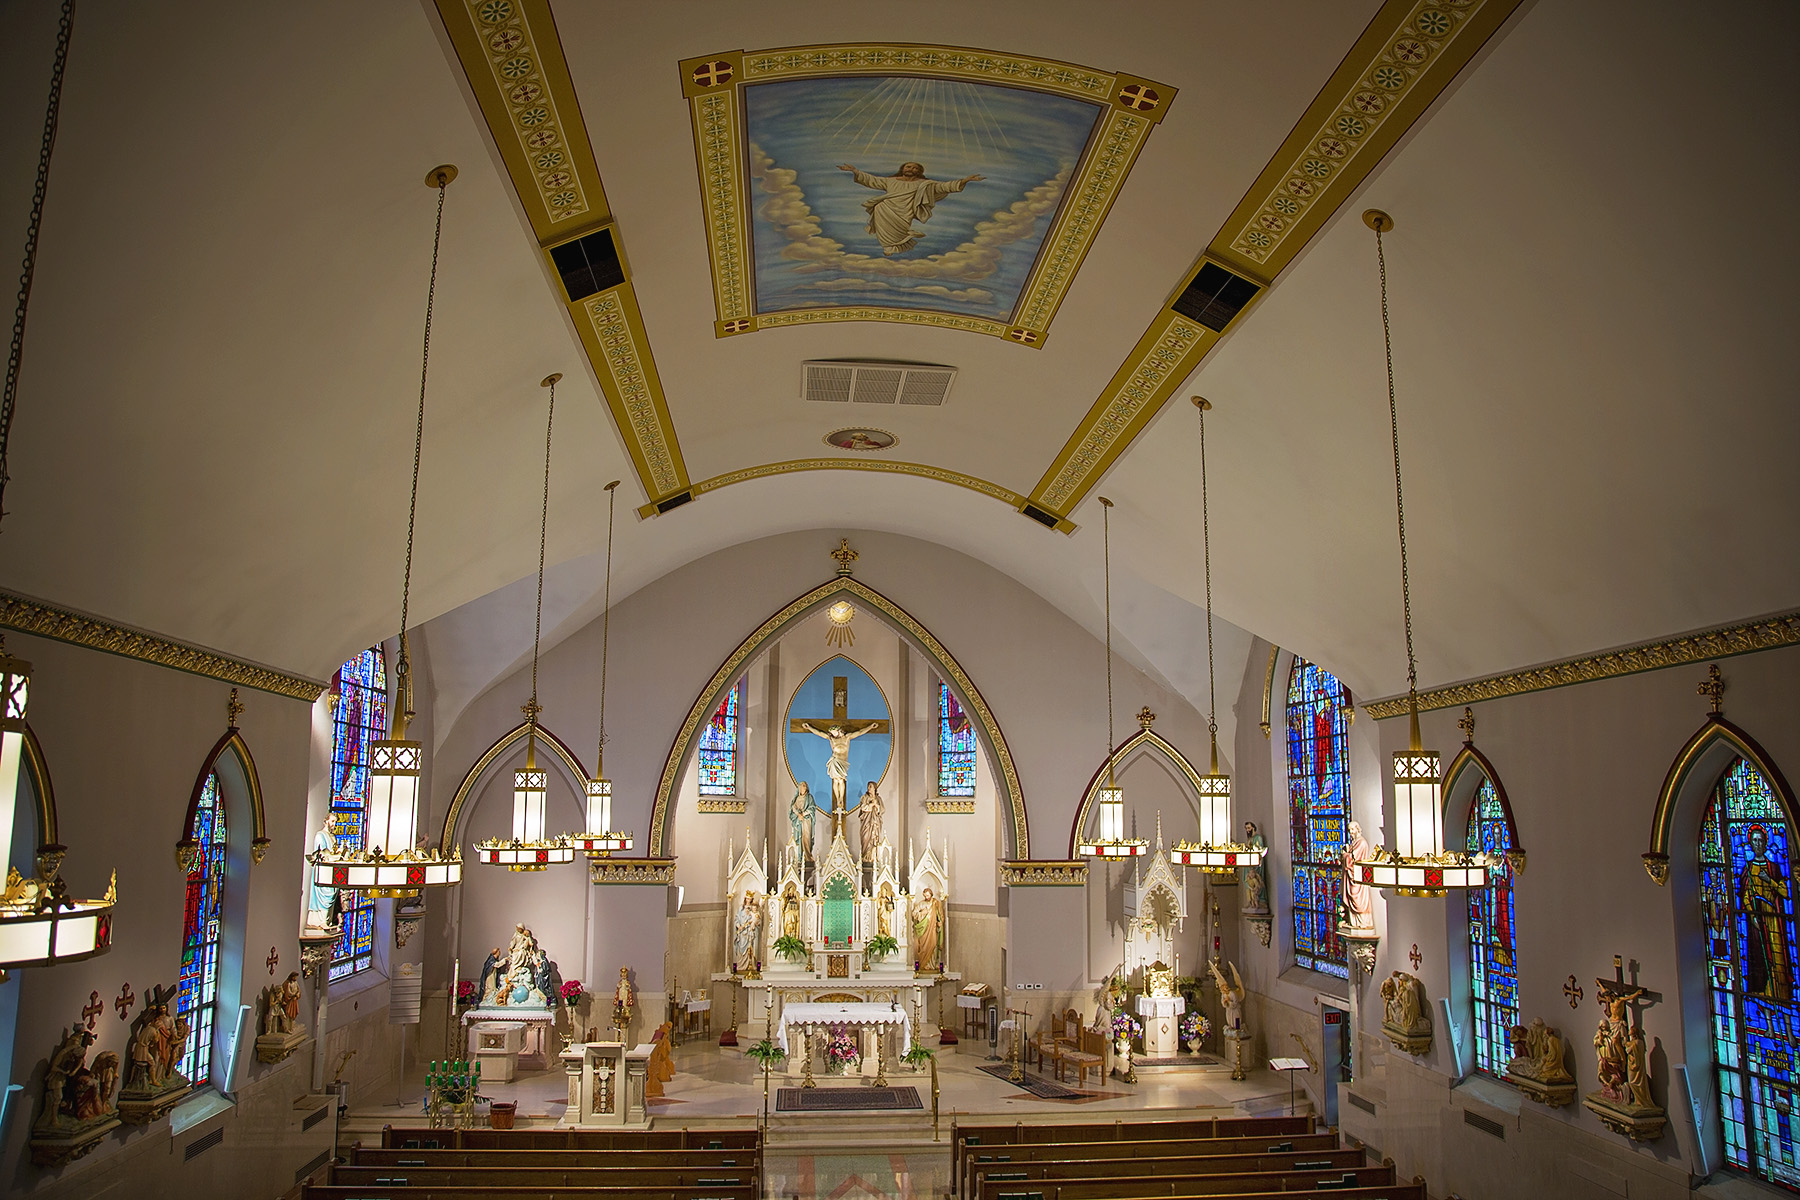 A view of Incarnation of Our Lord Church from the Choir Loft. Photo courtesy of Erick Macek (www.erickmacek.com)